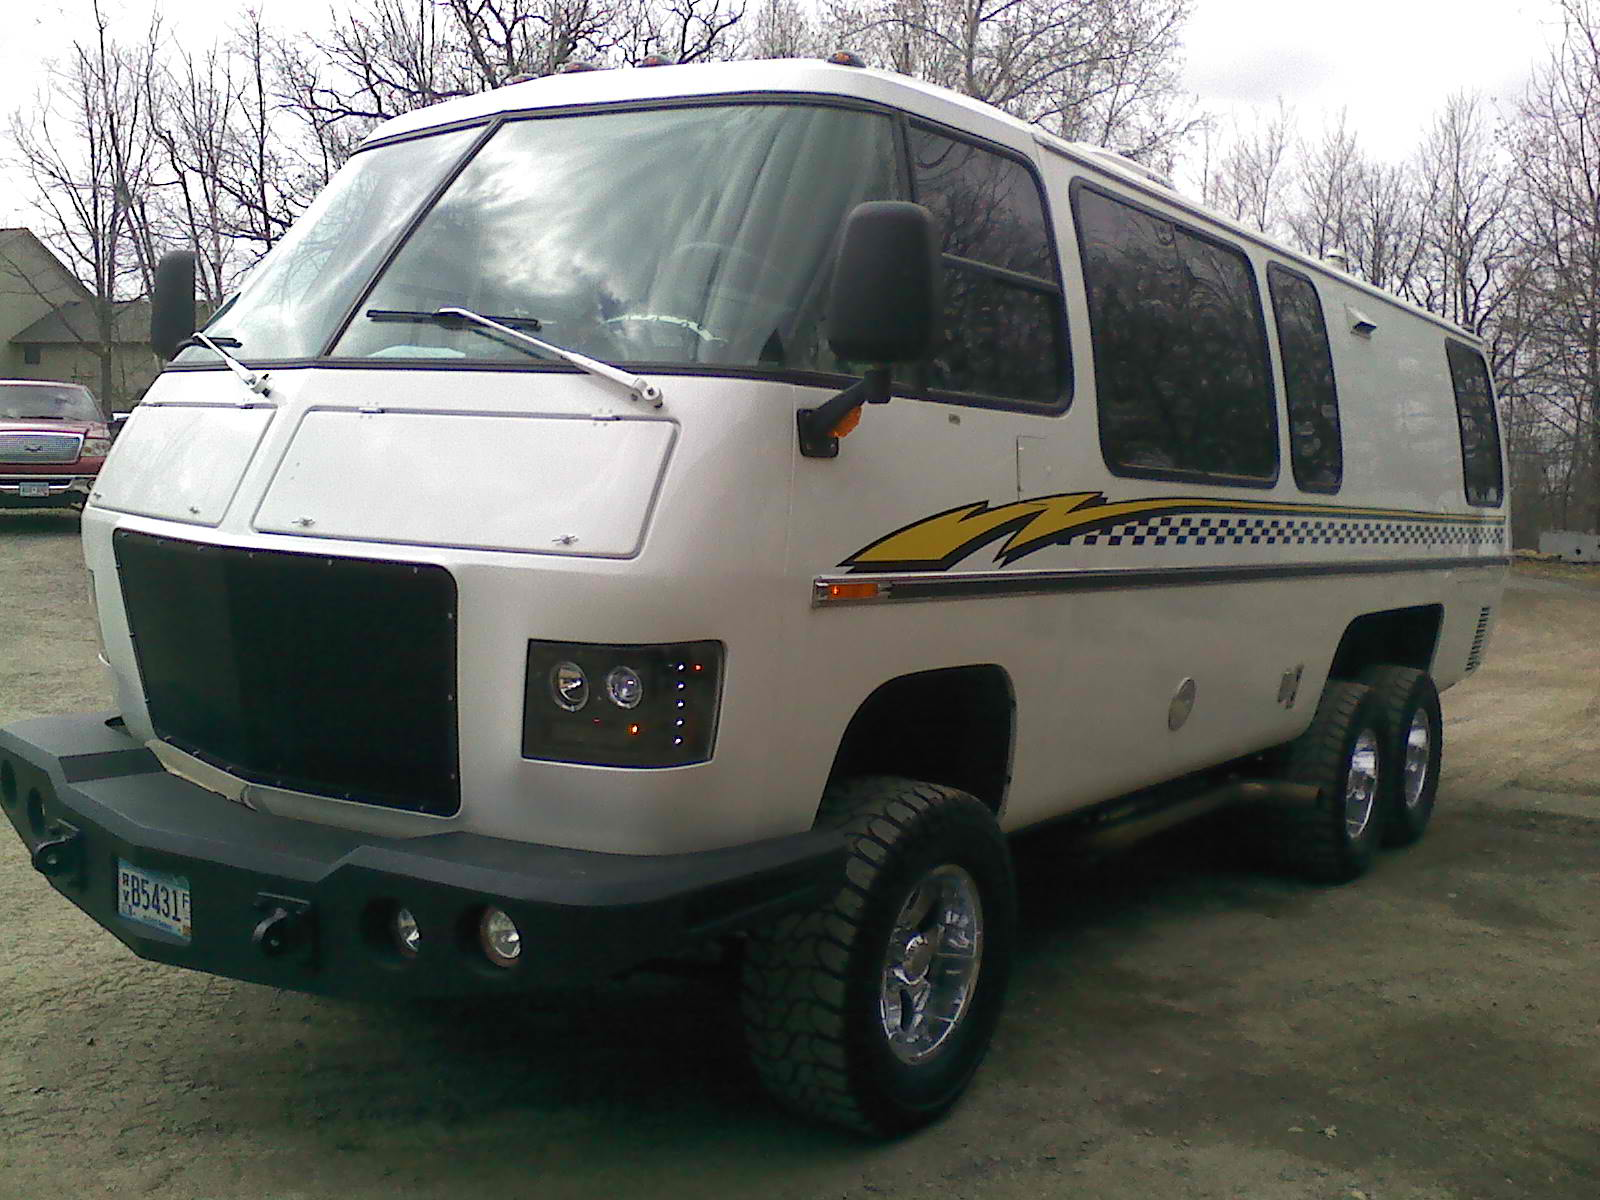 4x4 Motorhome For Sale Craigslist >> GMC Motor Home, Travel with Teri and Dan: What Do We Do at a GMC Motorhome Gathering?????